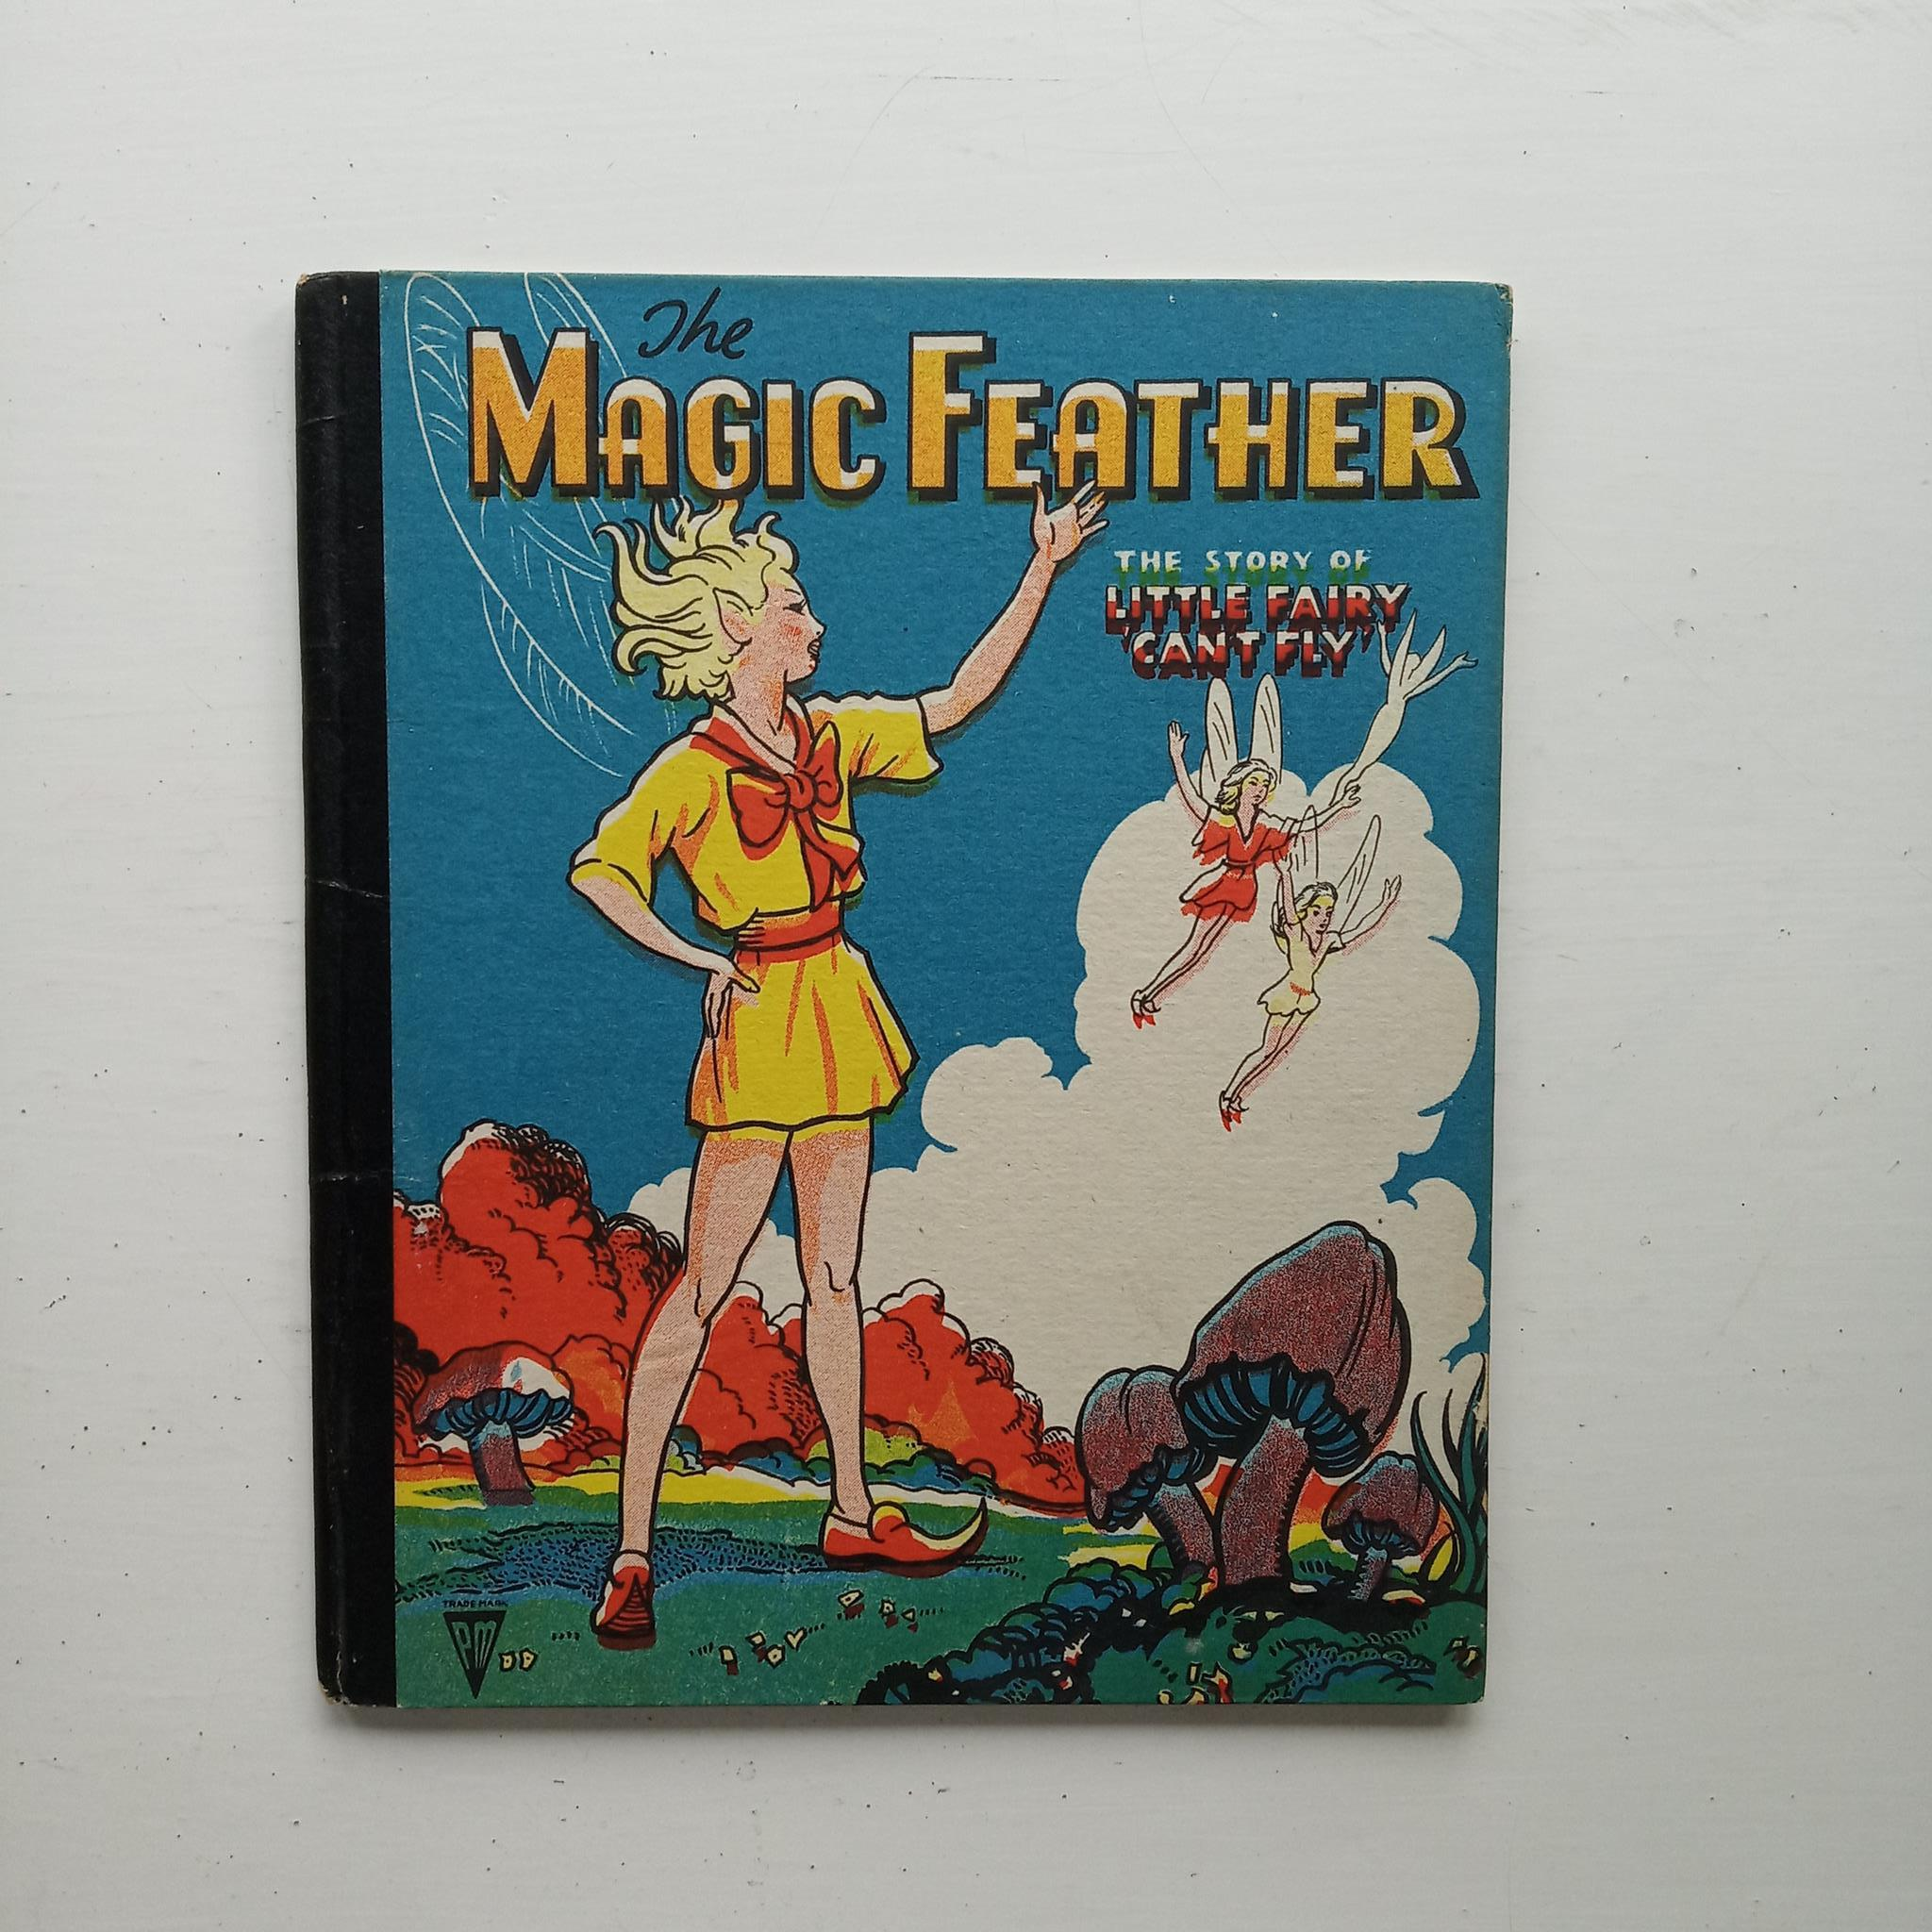 The Magic Feather/Poor Jack Frost by Dee Boreham and Marjorie Seymour